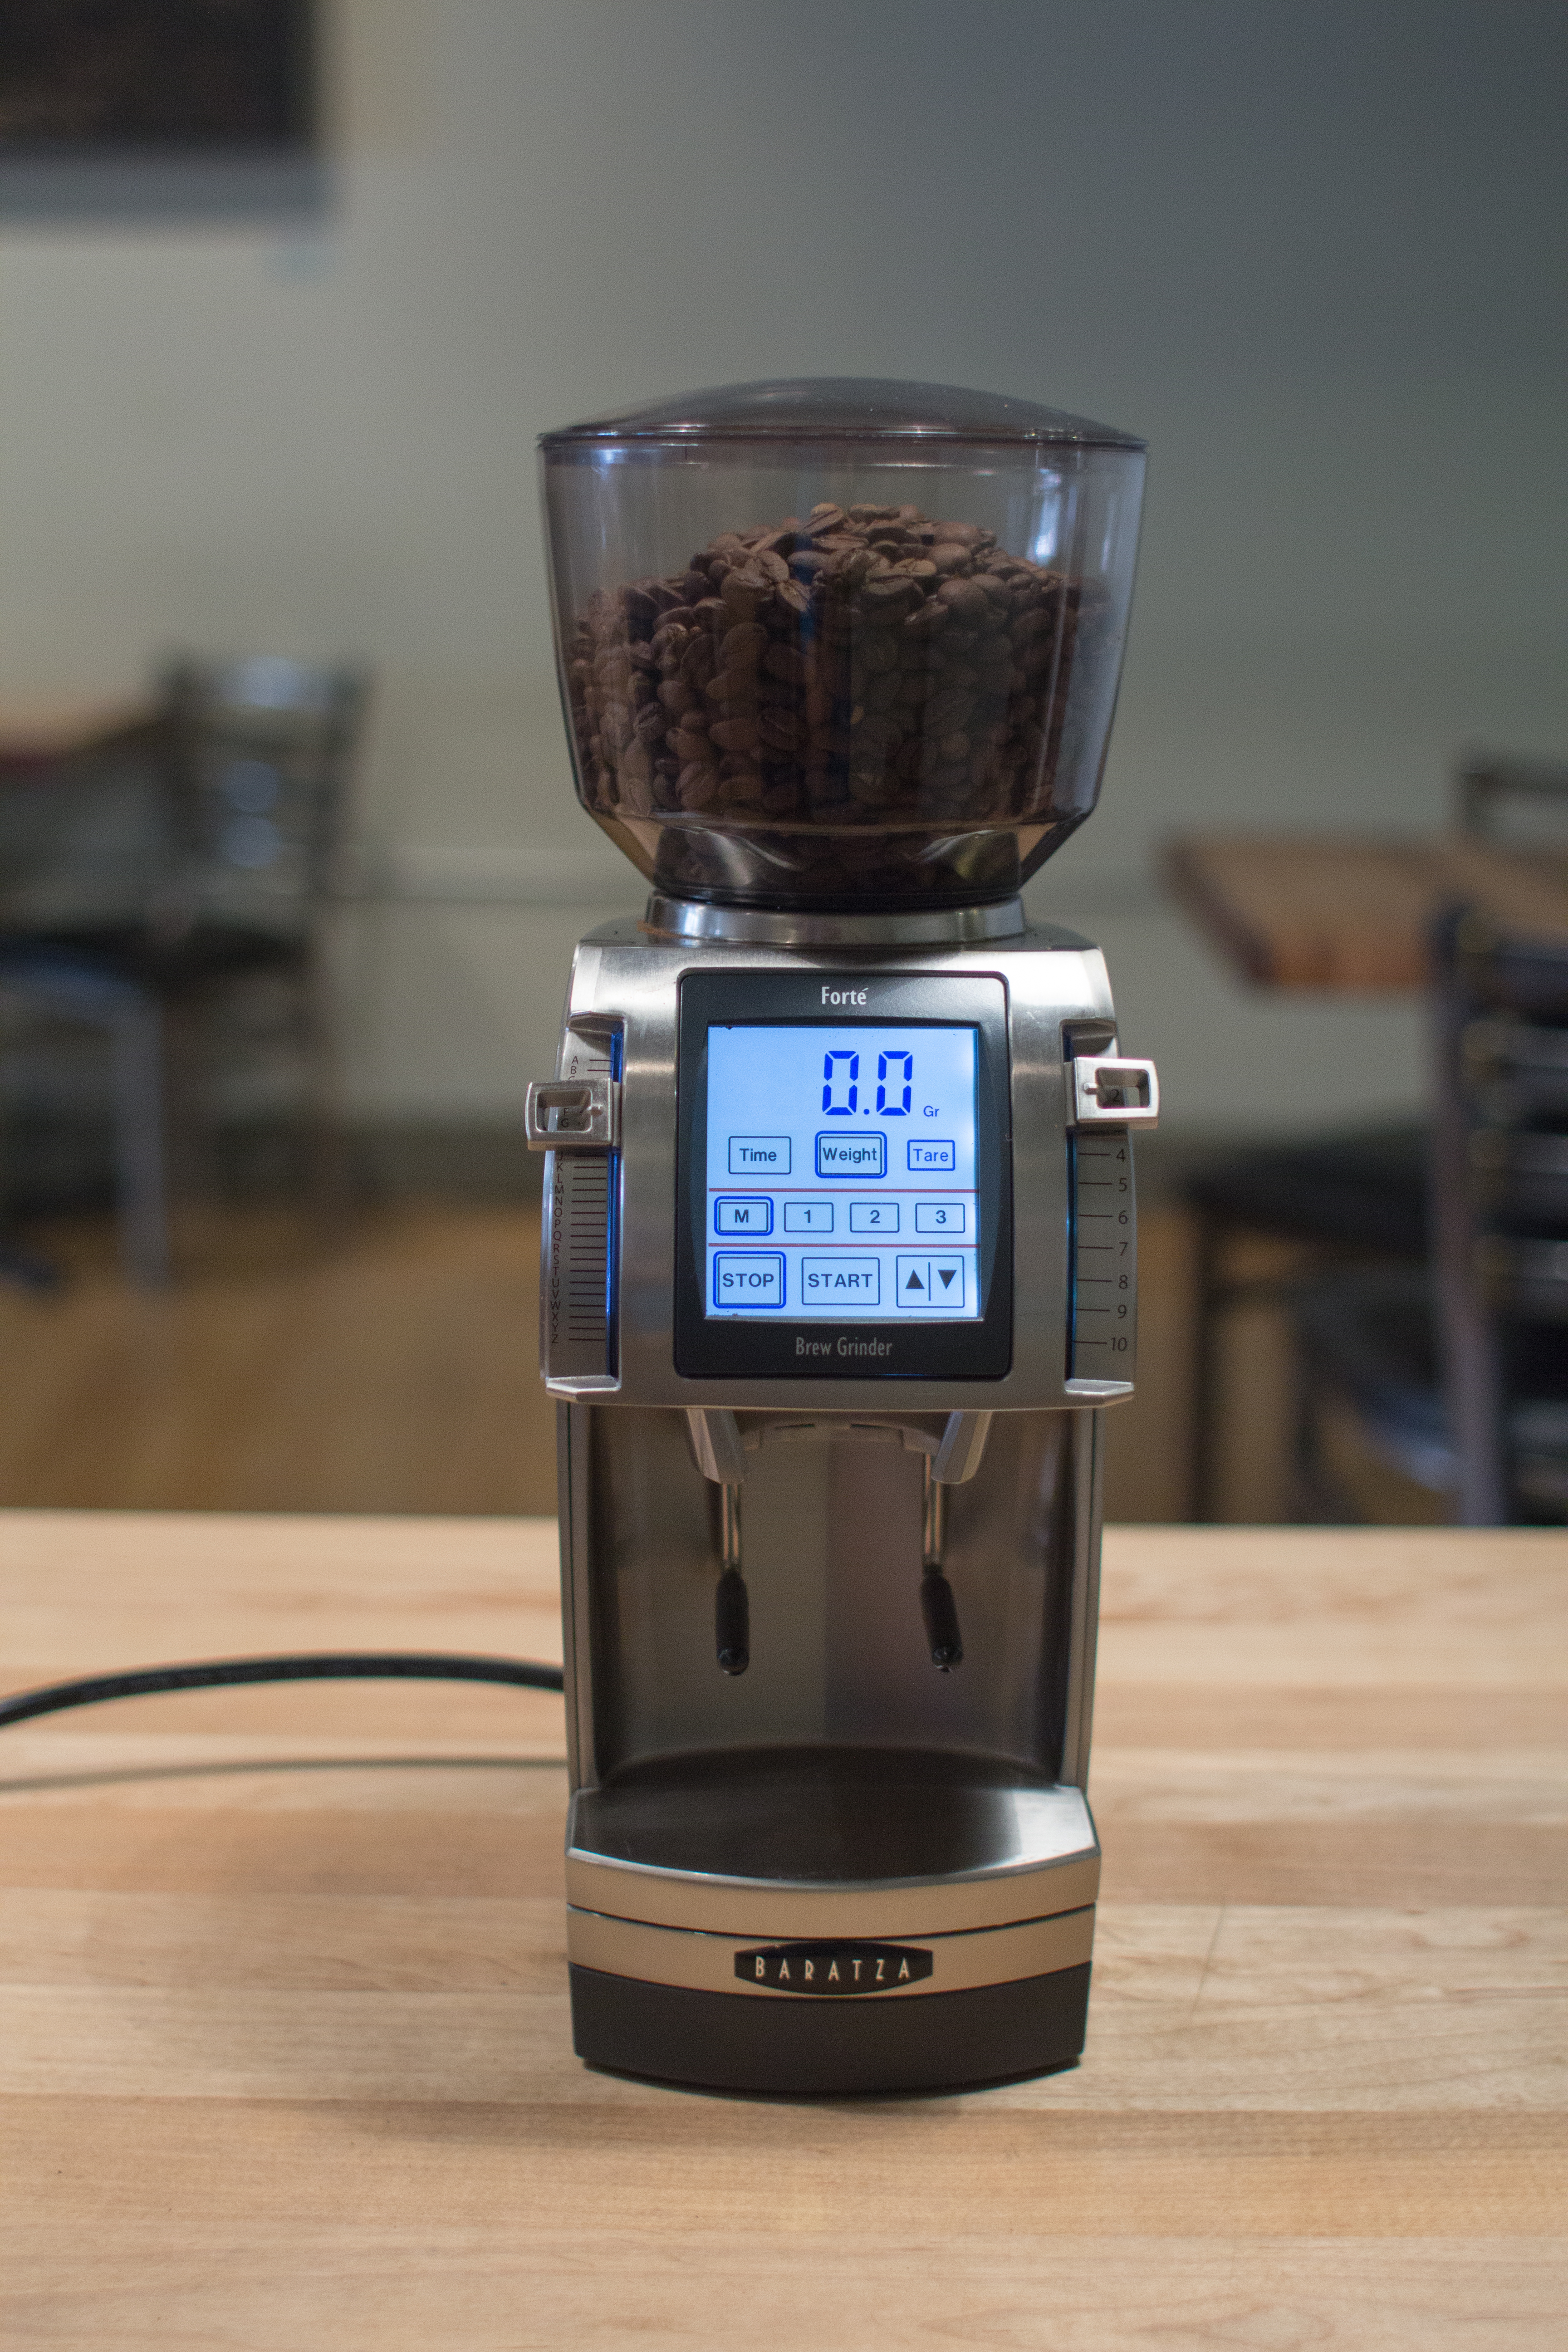 The Baratza Forte is a commercial-quality burr grinder that will exceed your expectations for coffee at home